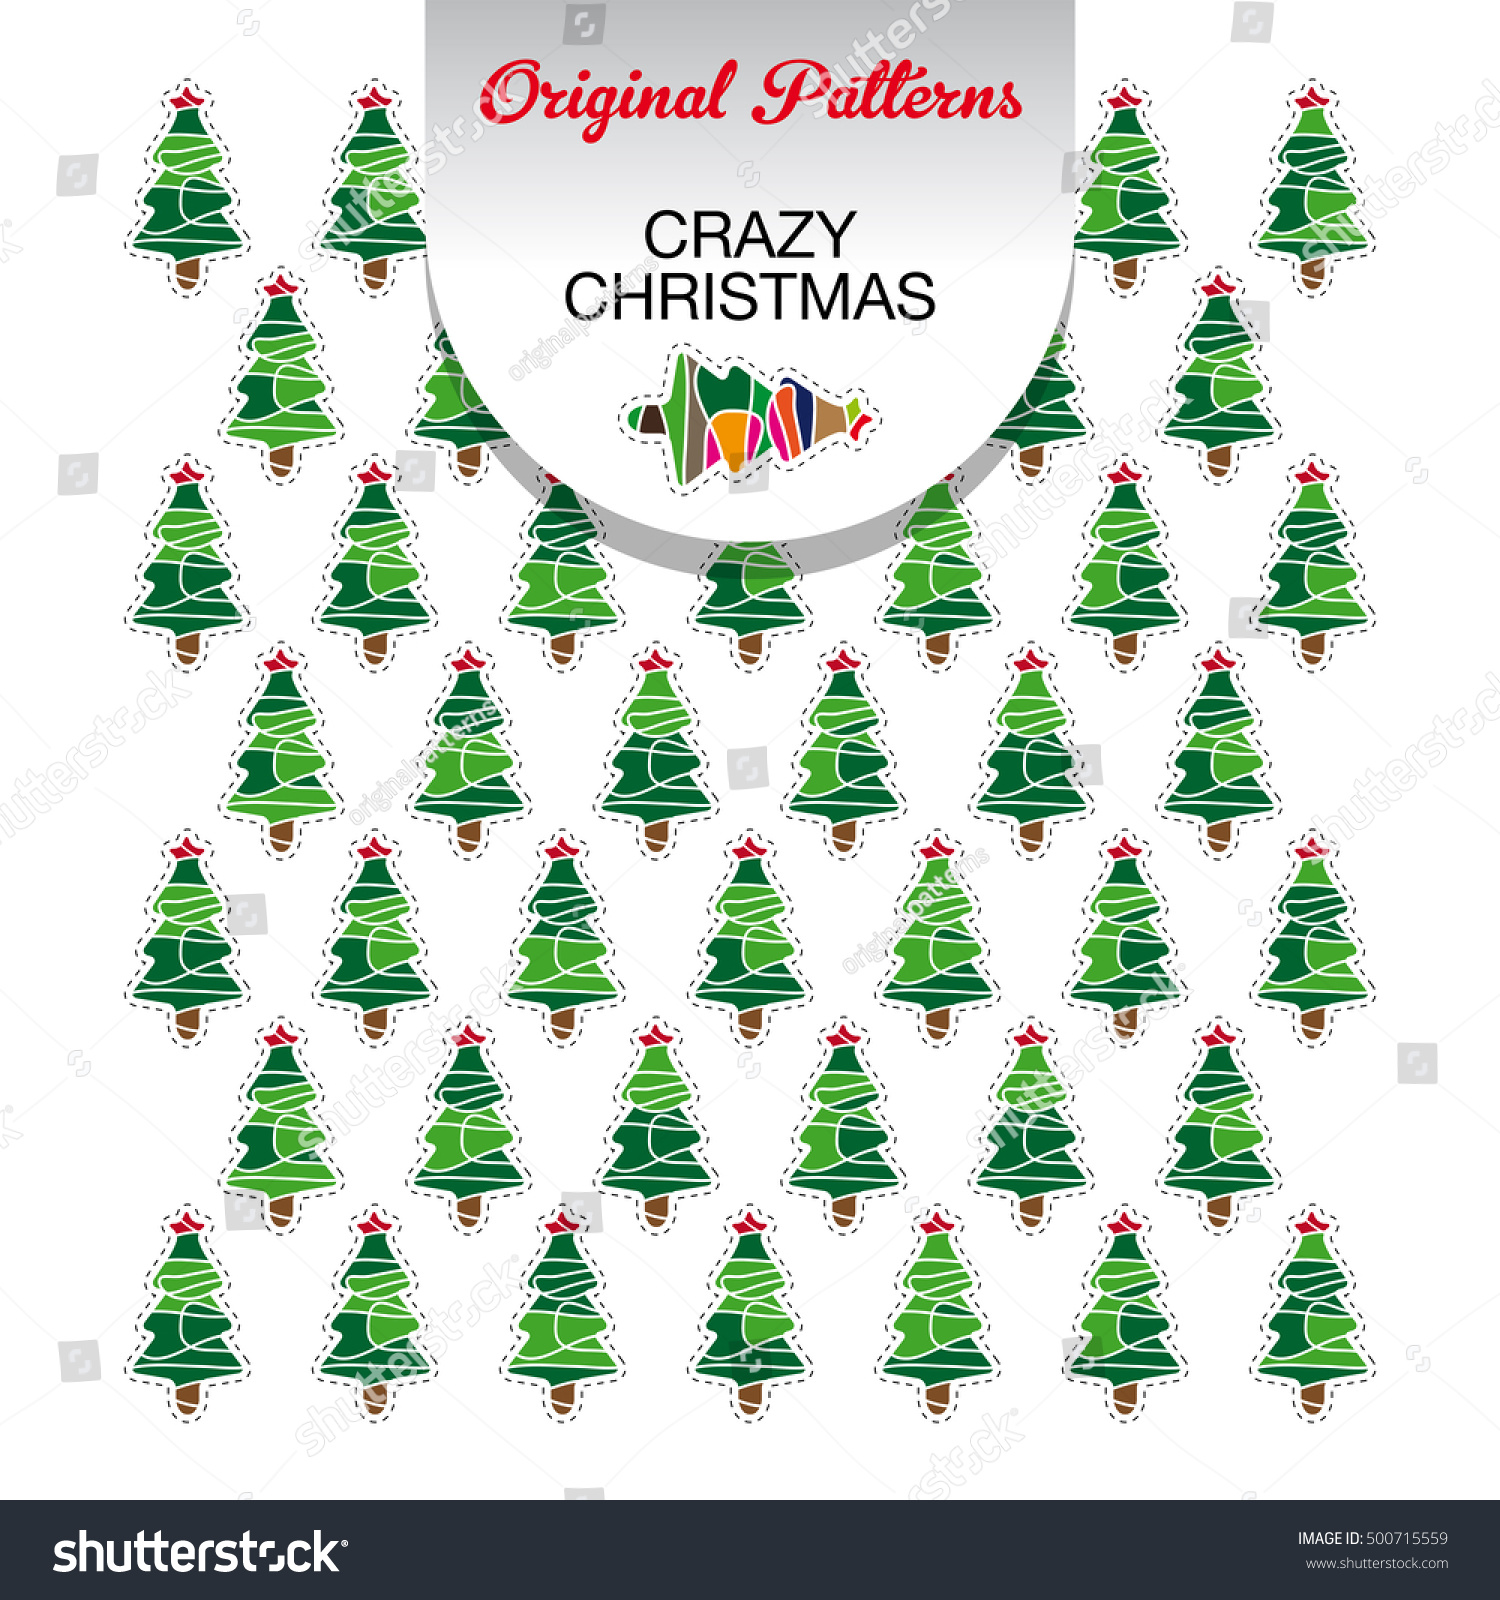 Original Crazy Christmas Pattern Can Be Stock Vector 500715559 ...